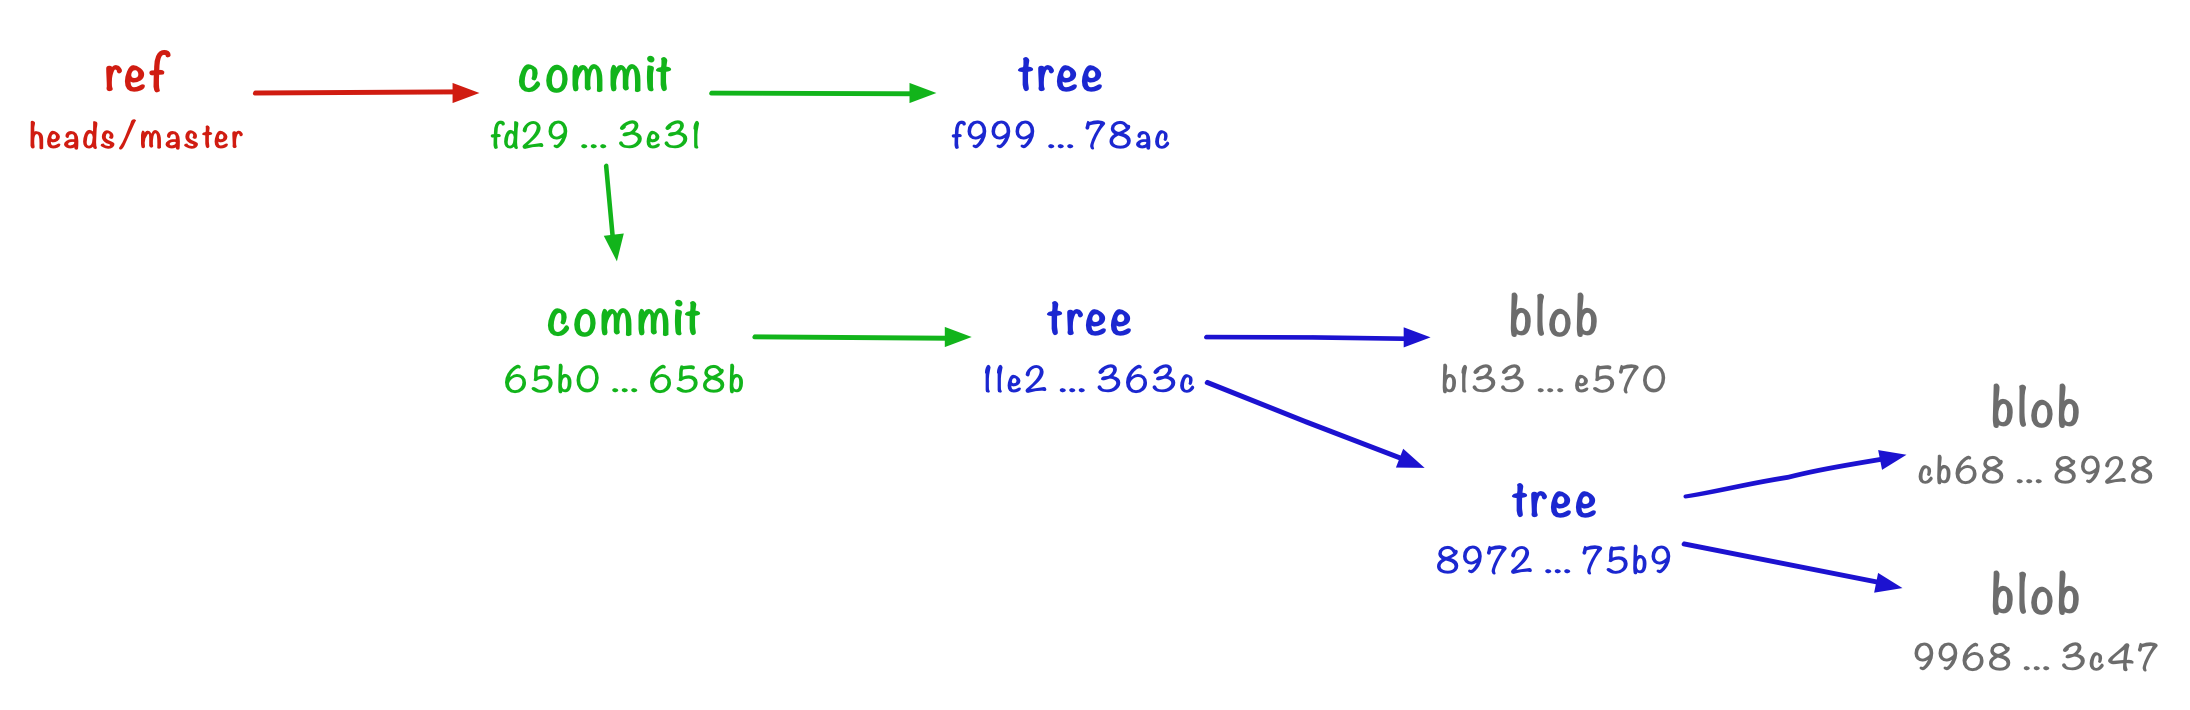 A ref (red) pointing to a commit (green), which in turn points to trees (blue) and blobs (grey).